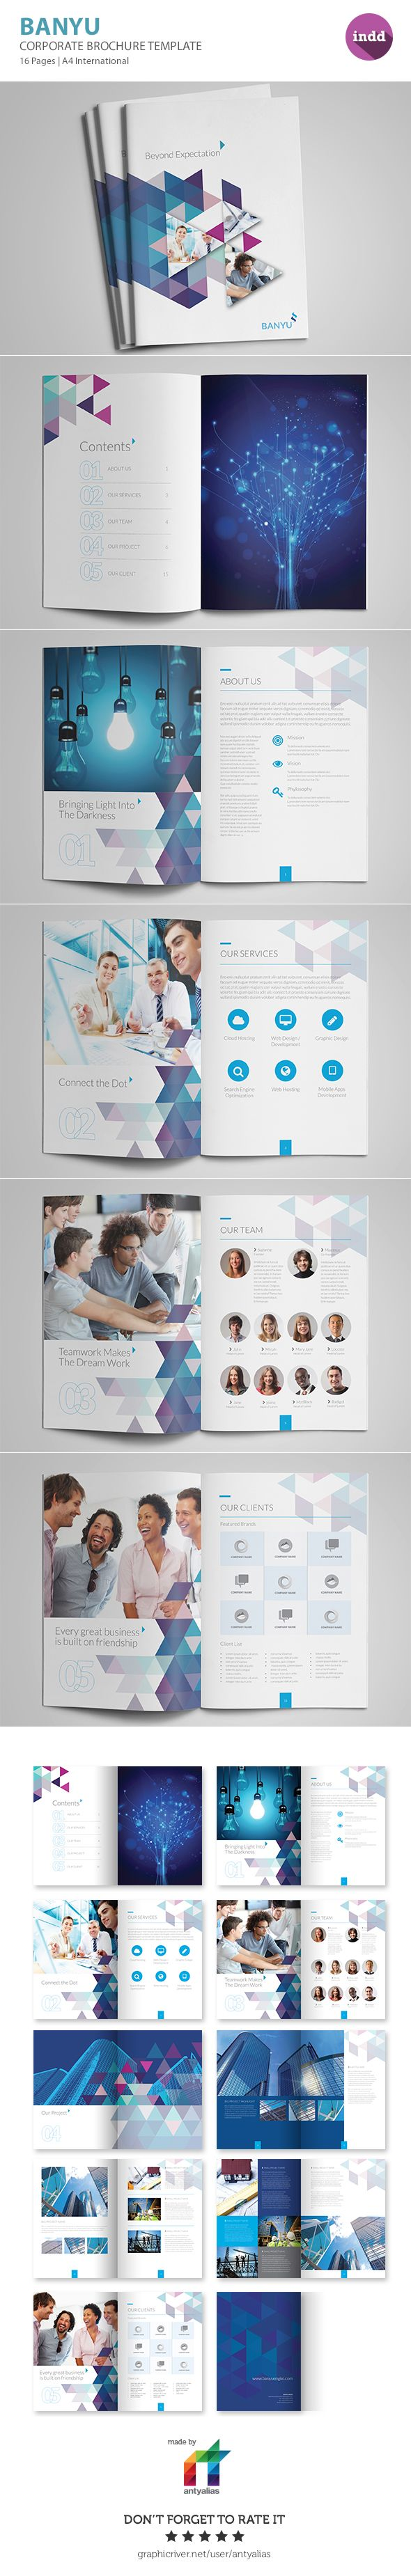 BANYU - Professional Corporate Brochure Templates by Alias Hamdi, via Behance